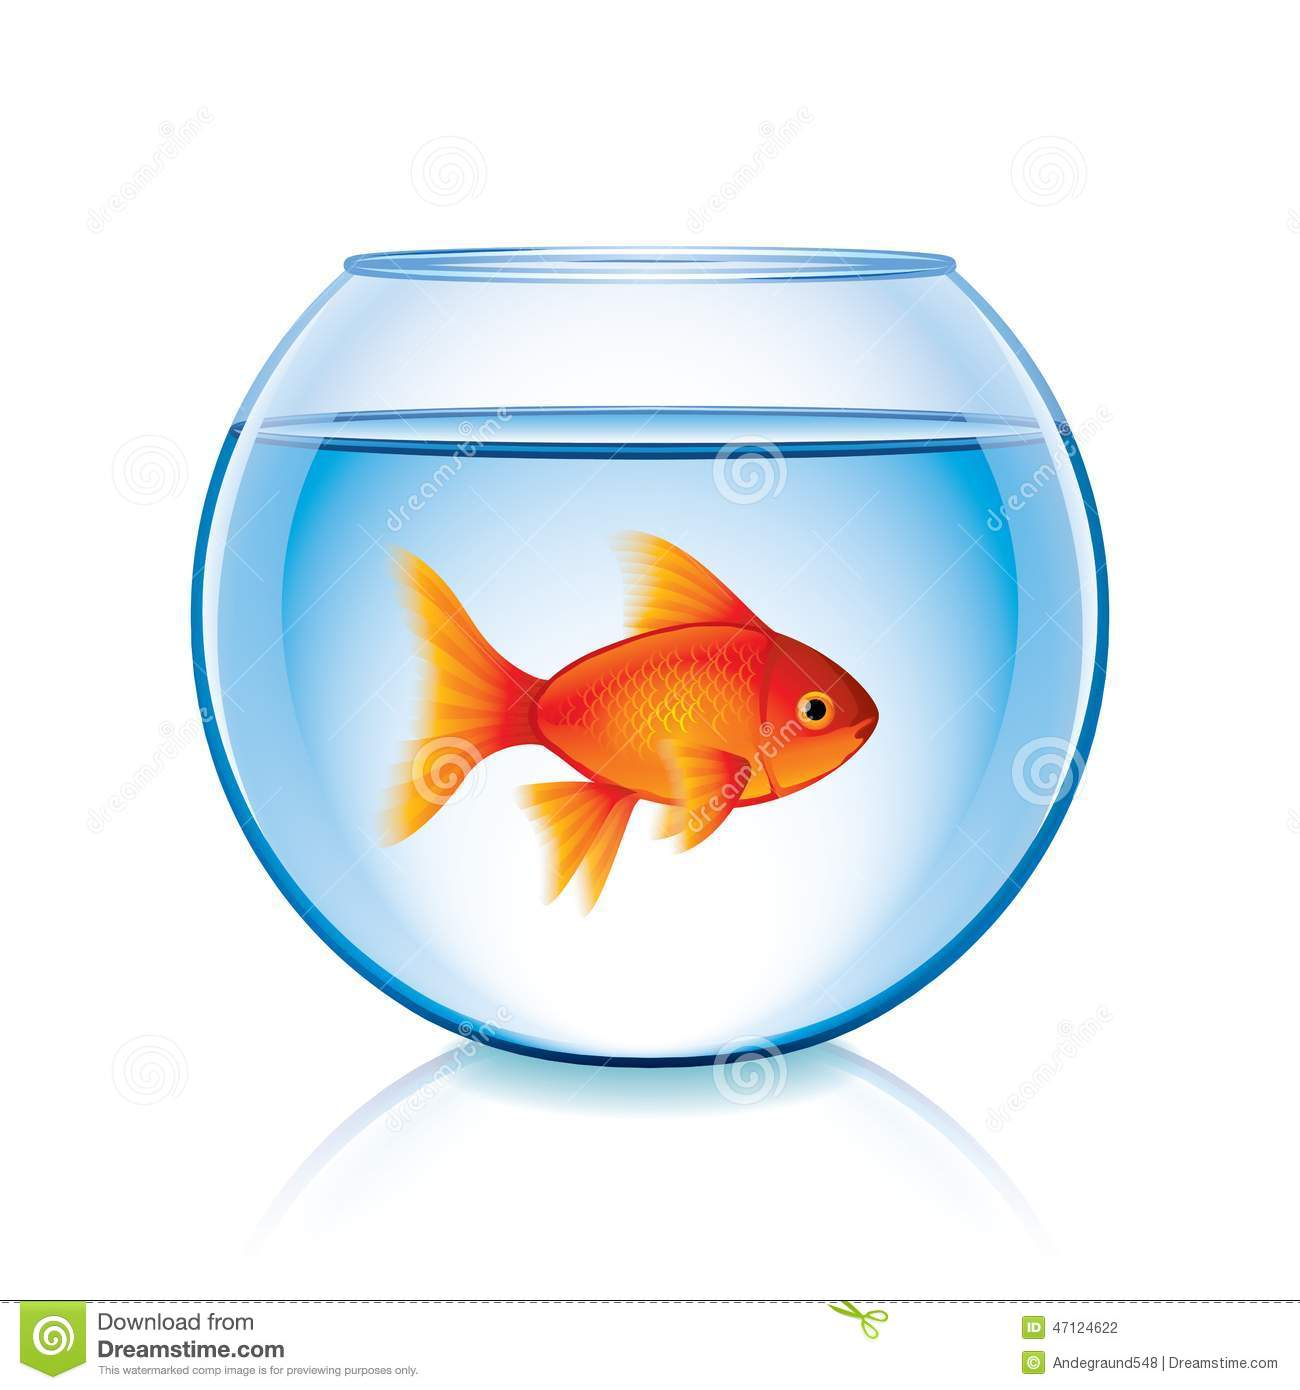 Goldfish Fish Bowl Clip Art Royalty Free Stock Photo.